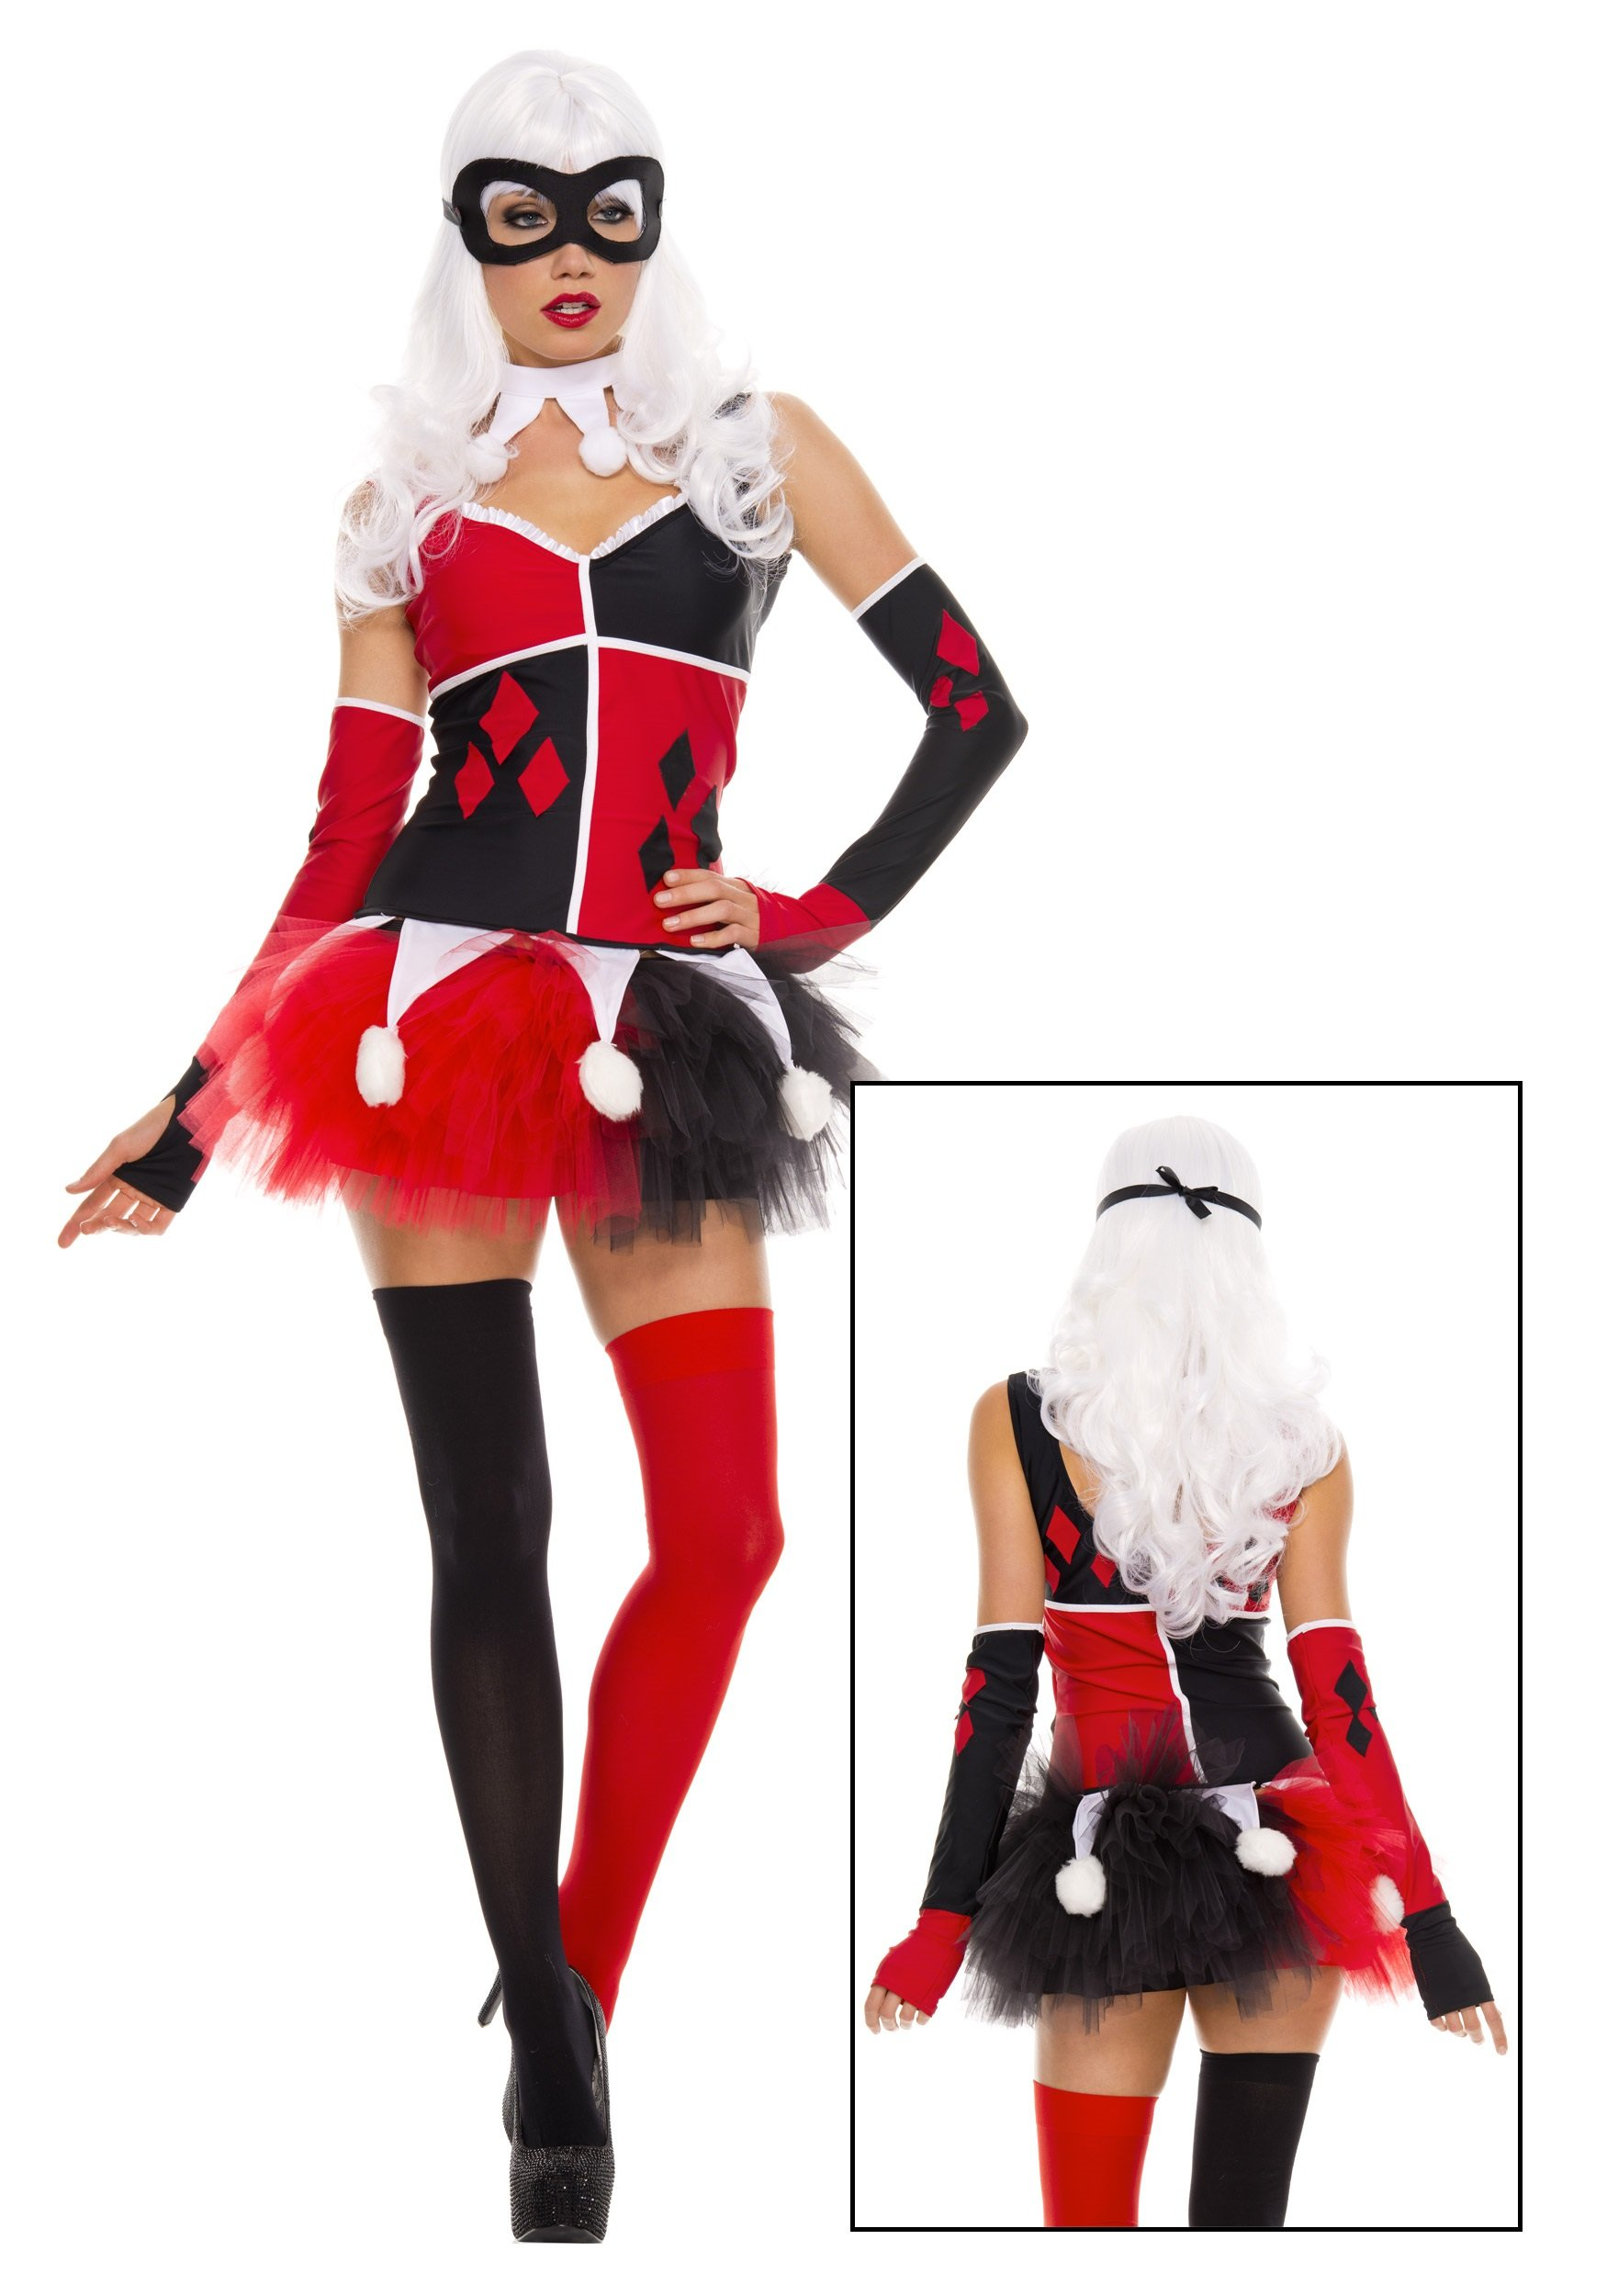 Harley Jester Costume - Small/Medium - Dress Size 2-8